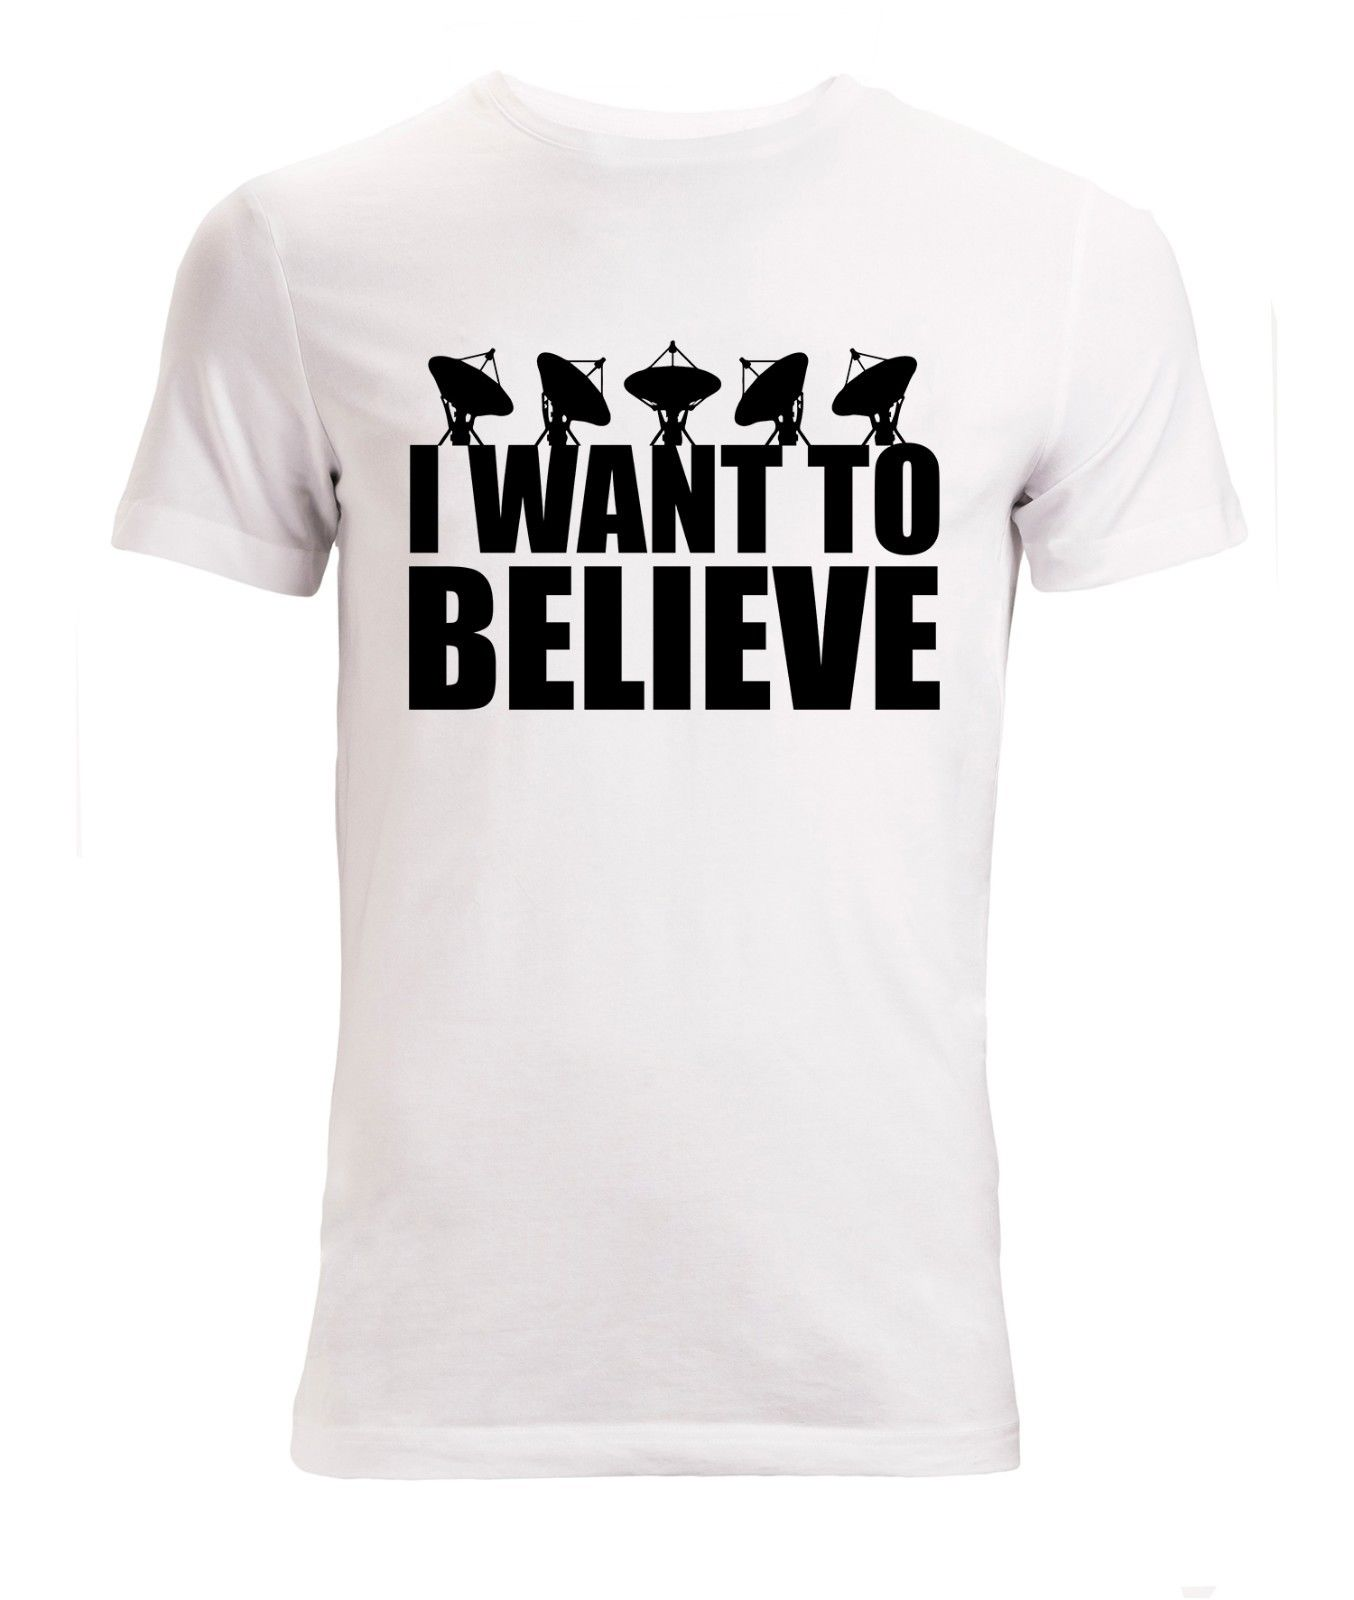 I Want To Believe Black Satellite Men's () T Shirt White Top Print T-Shirt Men Brand Clothing Fashion Style